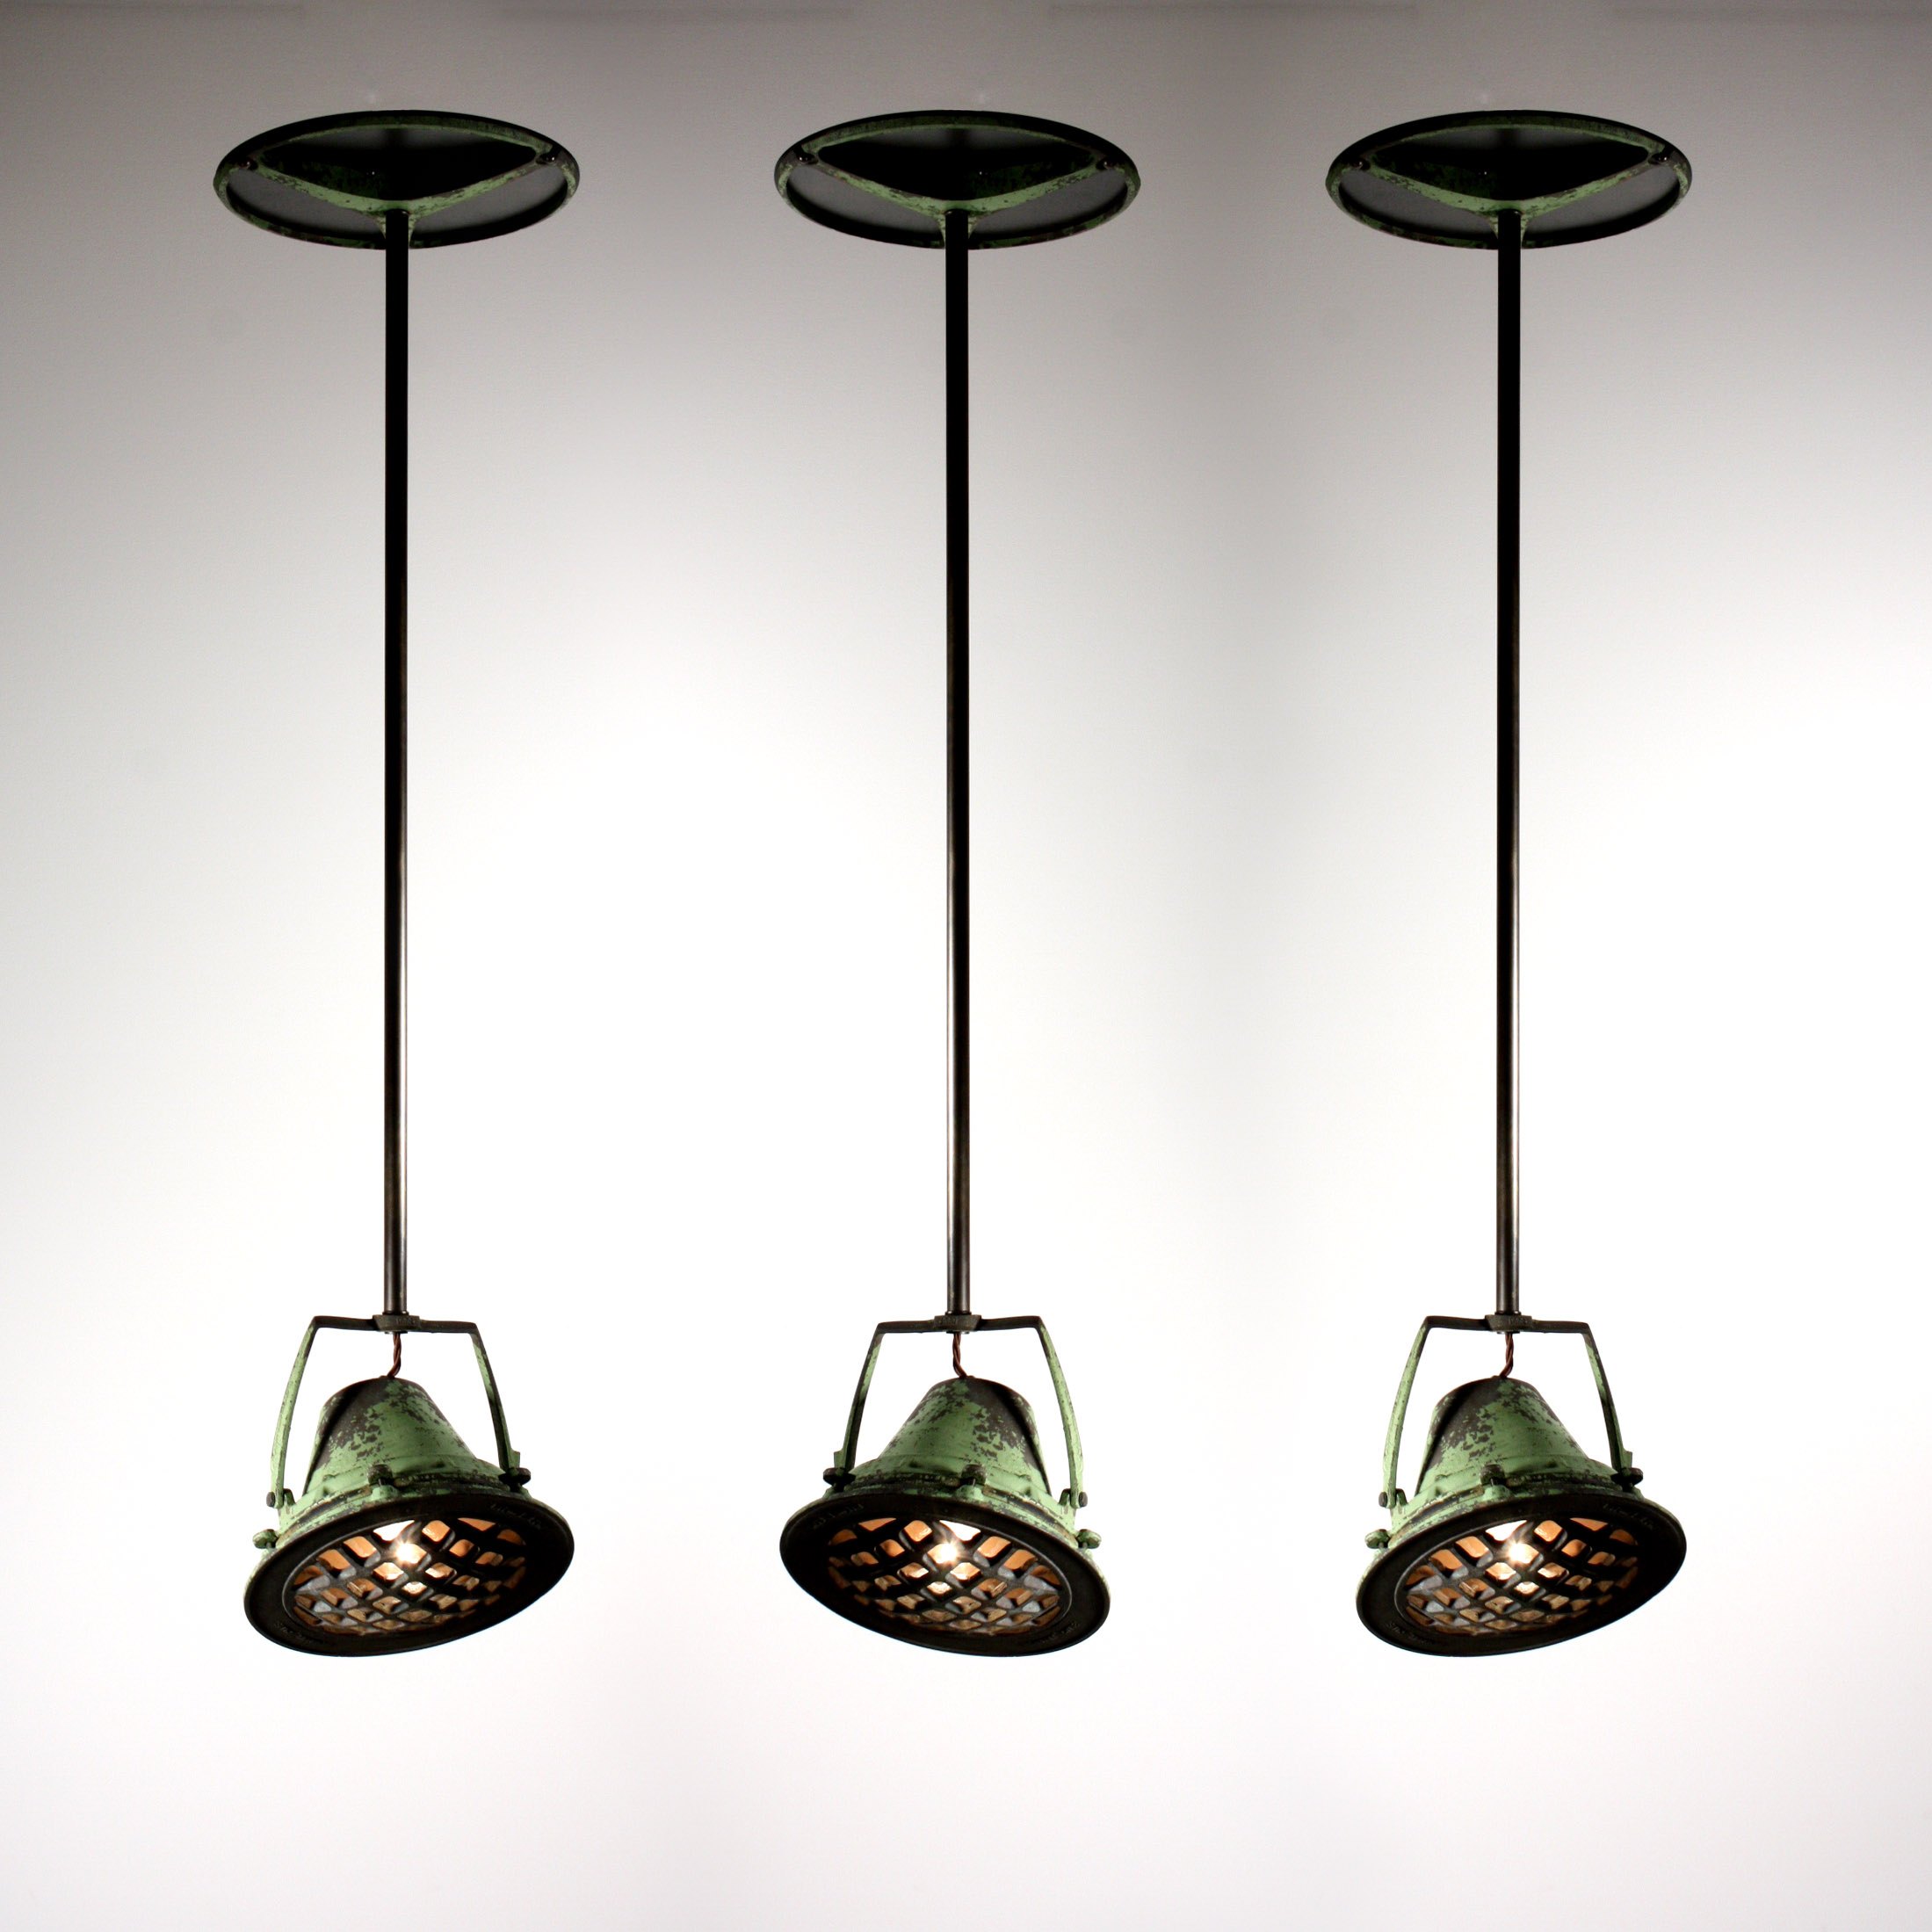 Three Matching Antique Industrial Pendant Lights From